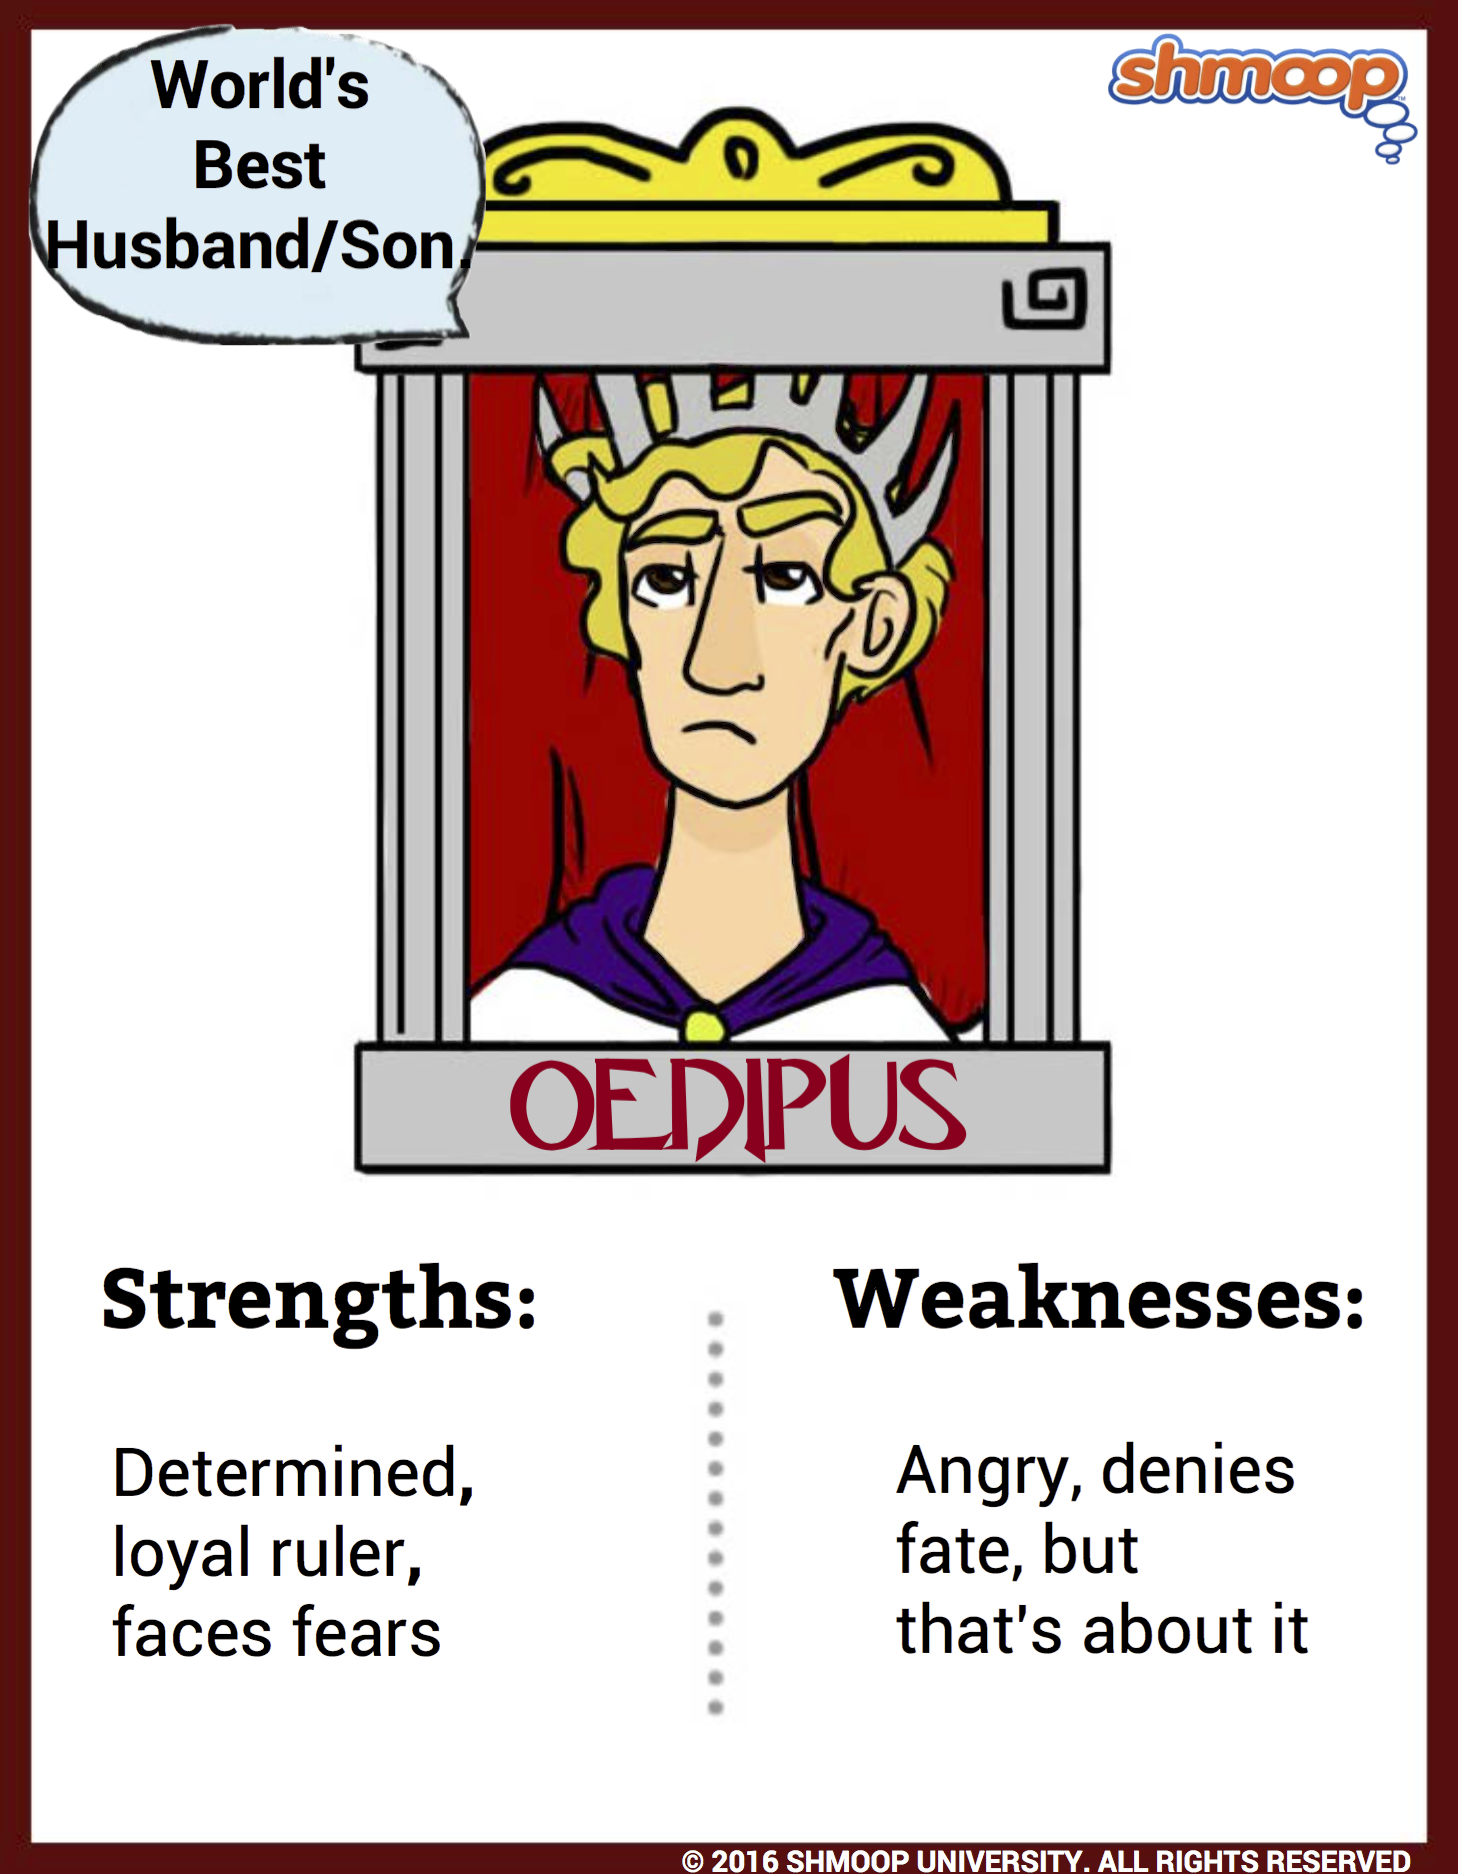 an analysis of the role of fate in oedipus by sophocles Get an answer for 'what is the role of fate in oedipus rex' and find homework help for other oedipus rex questions at enotes.